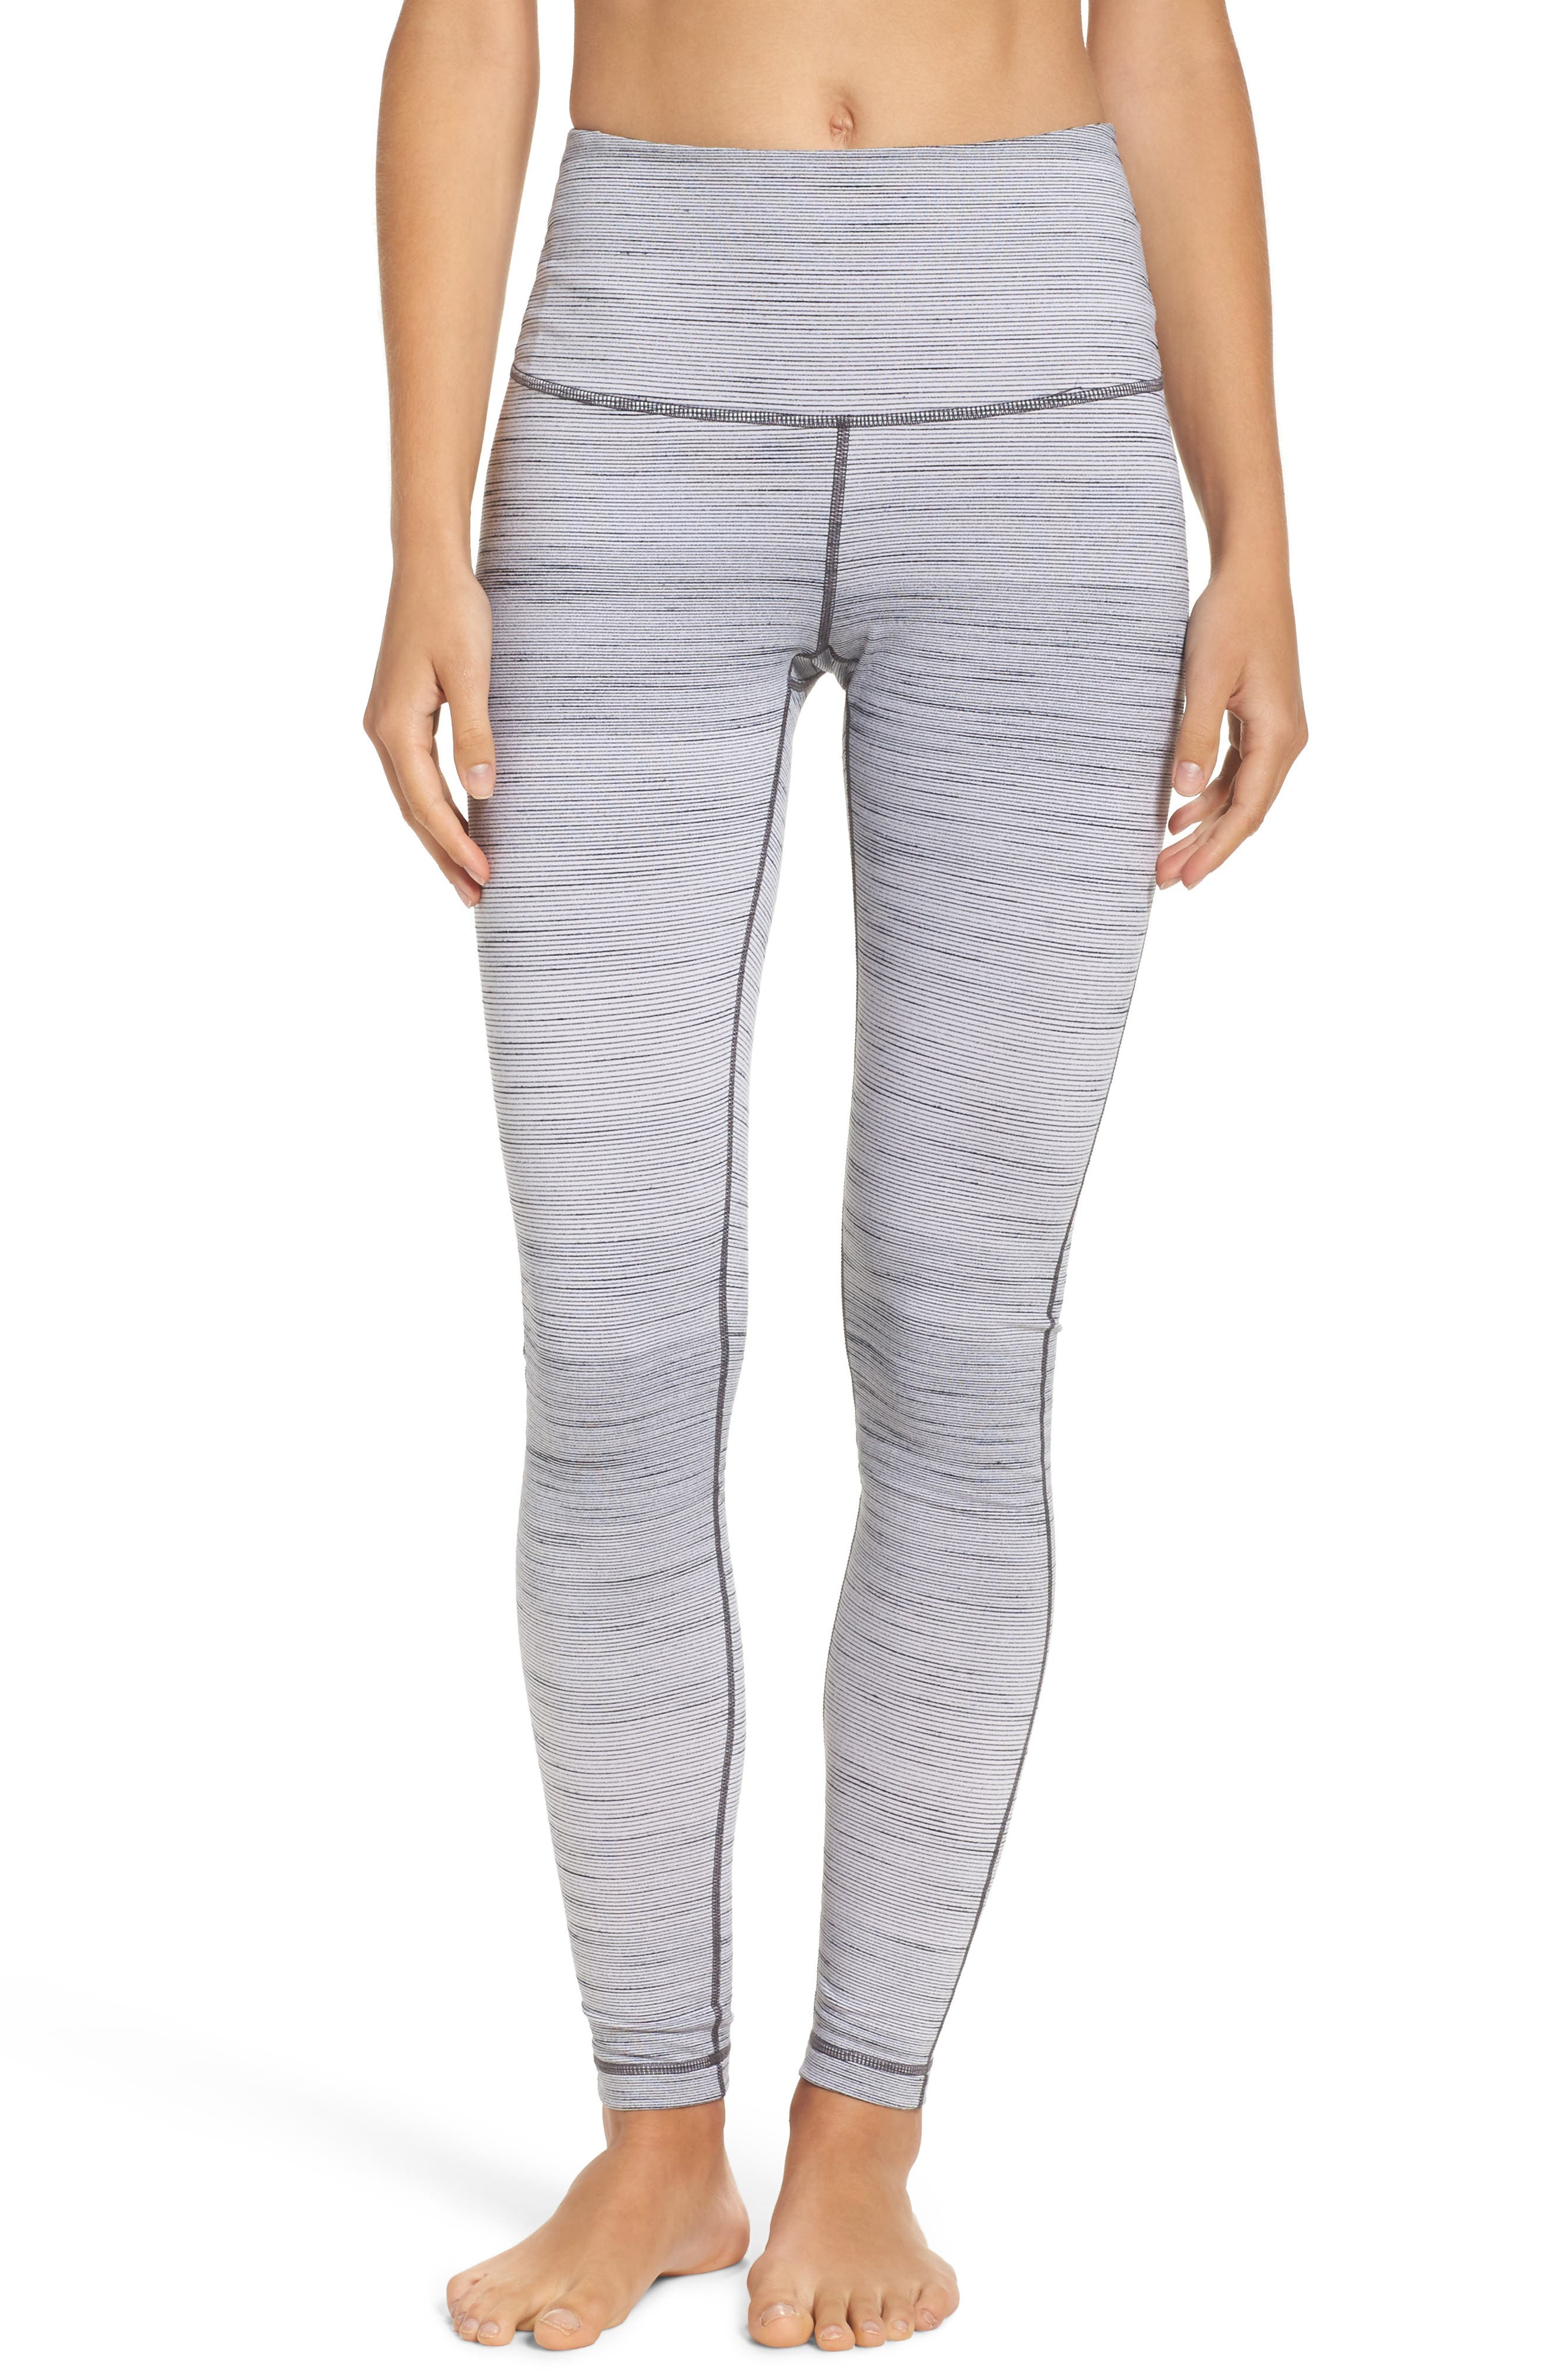 Zella Live-In High Waist Leggings (Online Only)